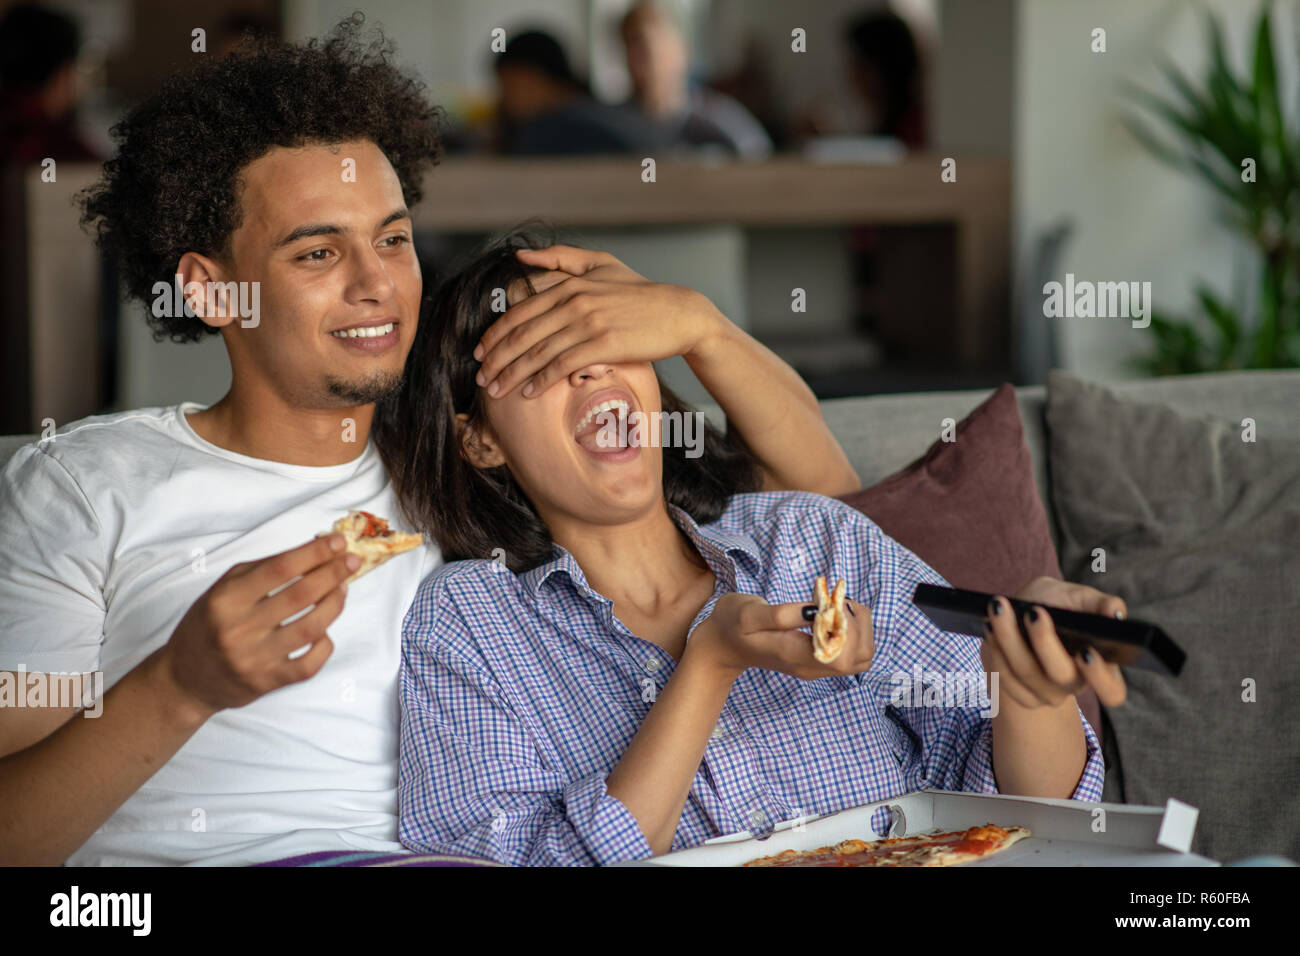 Happy couple watching tv while eating pizza. Shallow depth of field, focus on the man - Stock Image